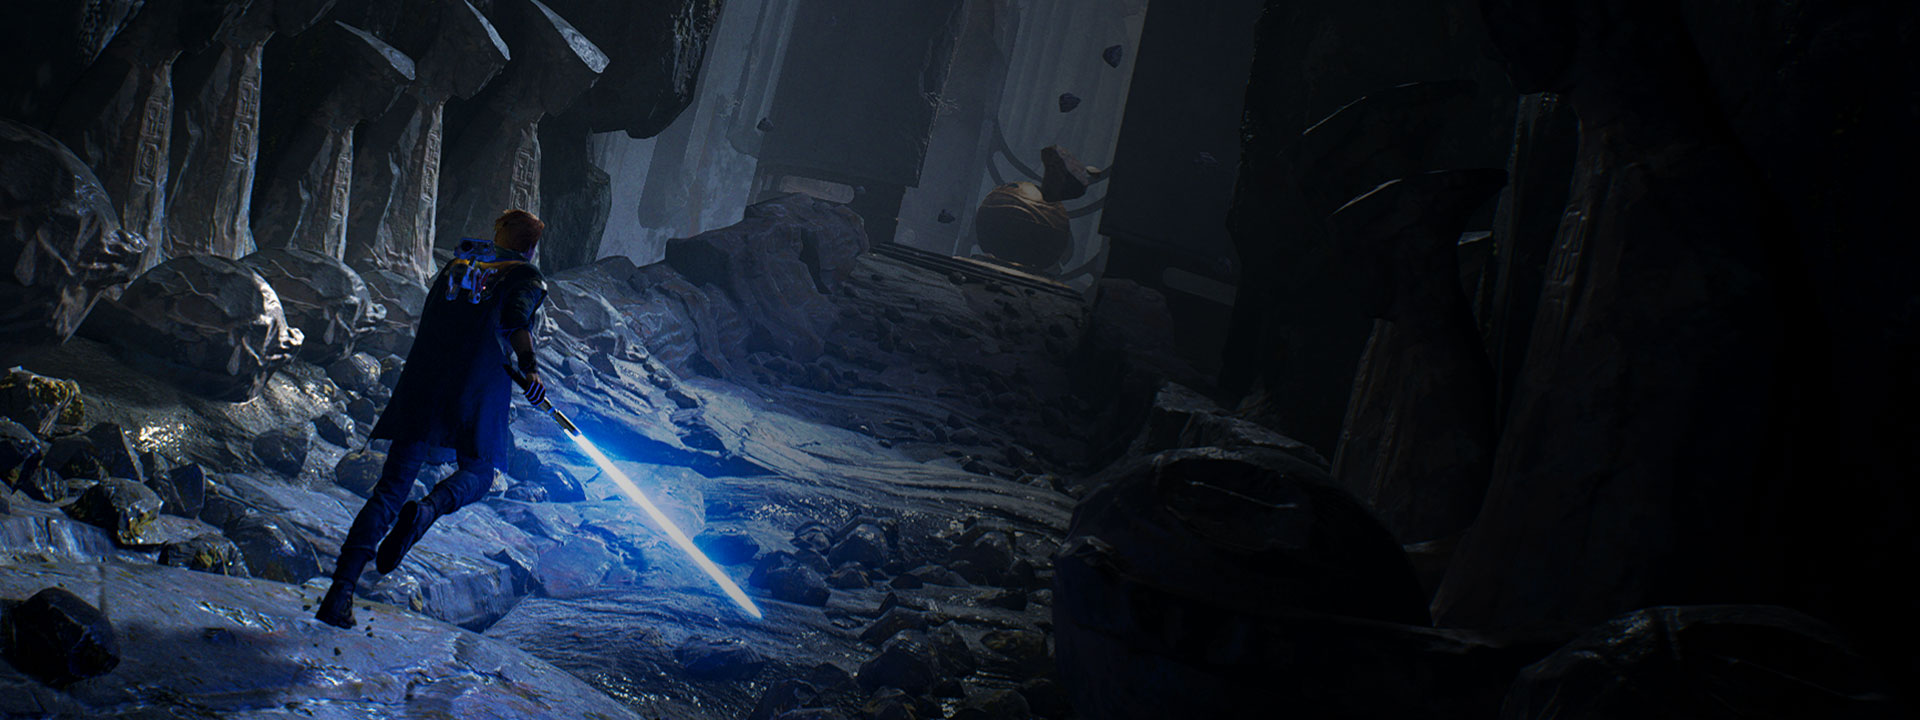 Cal Kestis readies his lightsaber as he walks through a corridor in some ruins